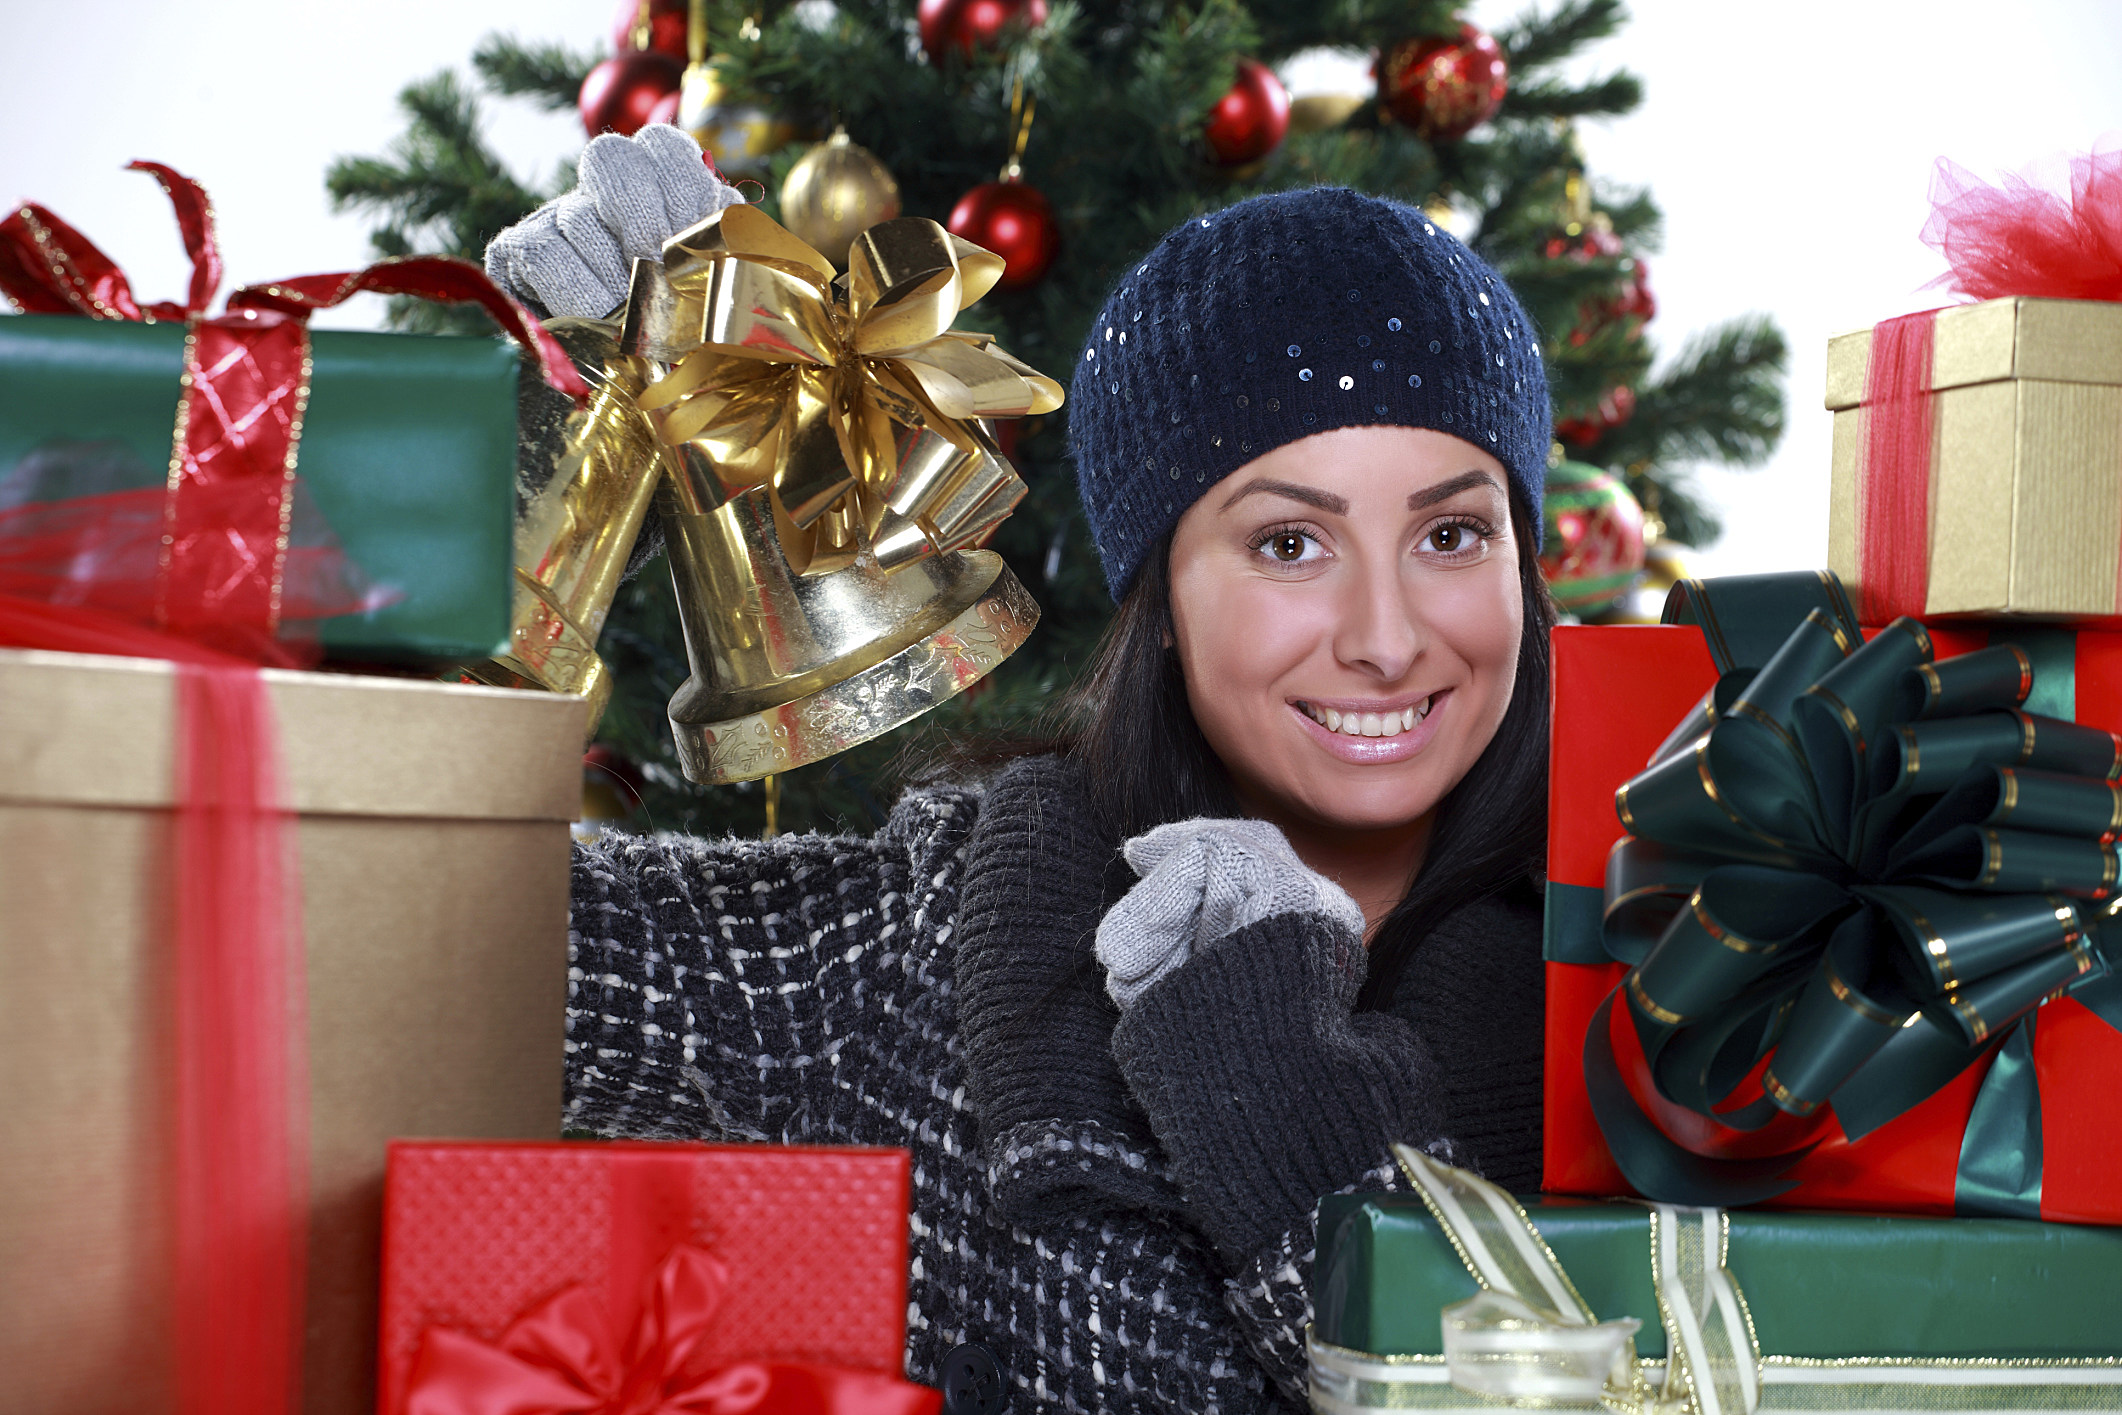 Top 5 Hot Christmas Gifts You Can Still Get at Costco